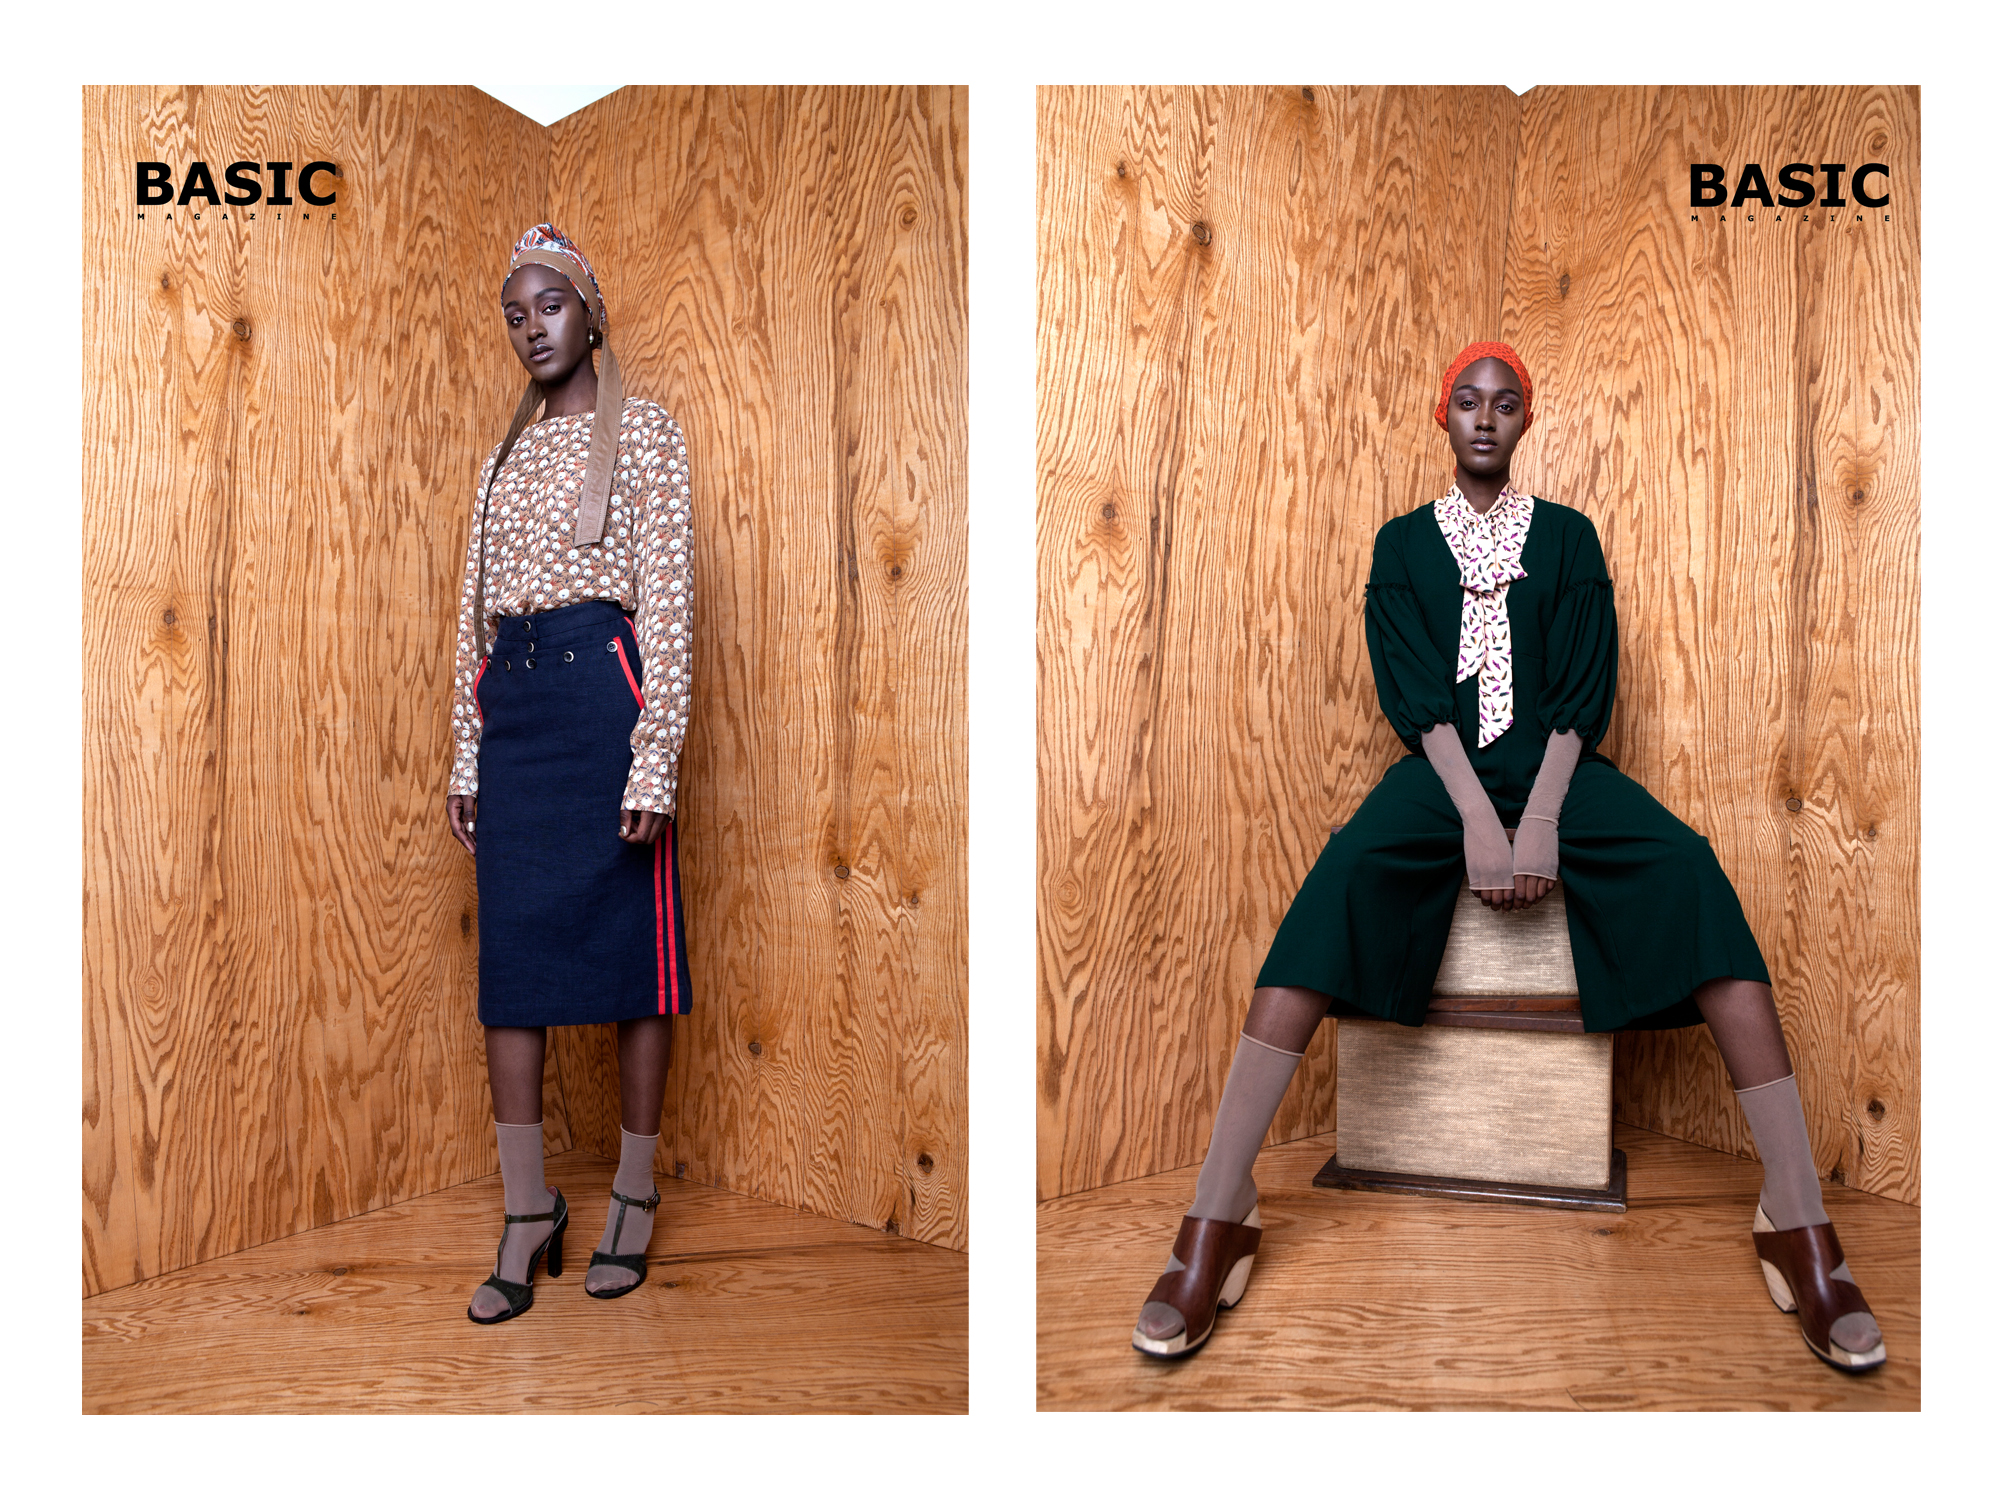 BASIC MAGAZINE Editorial